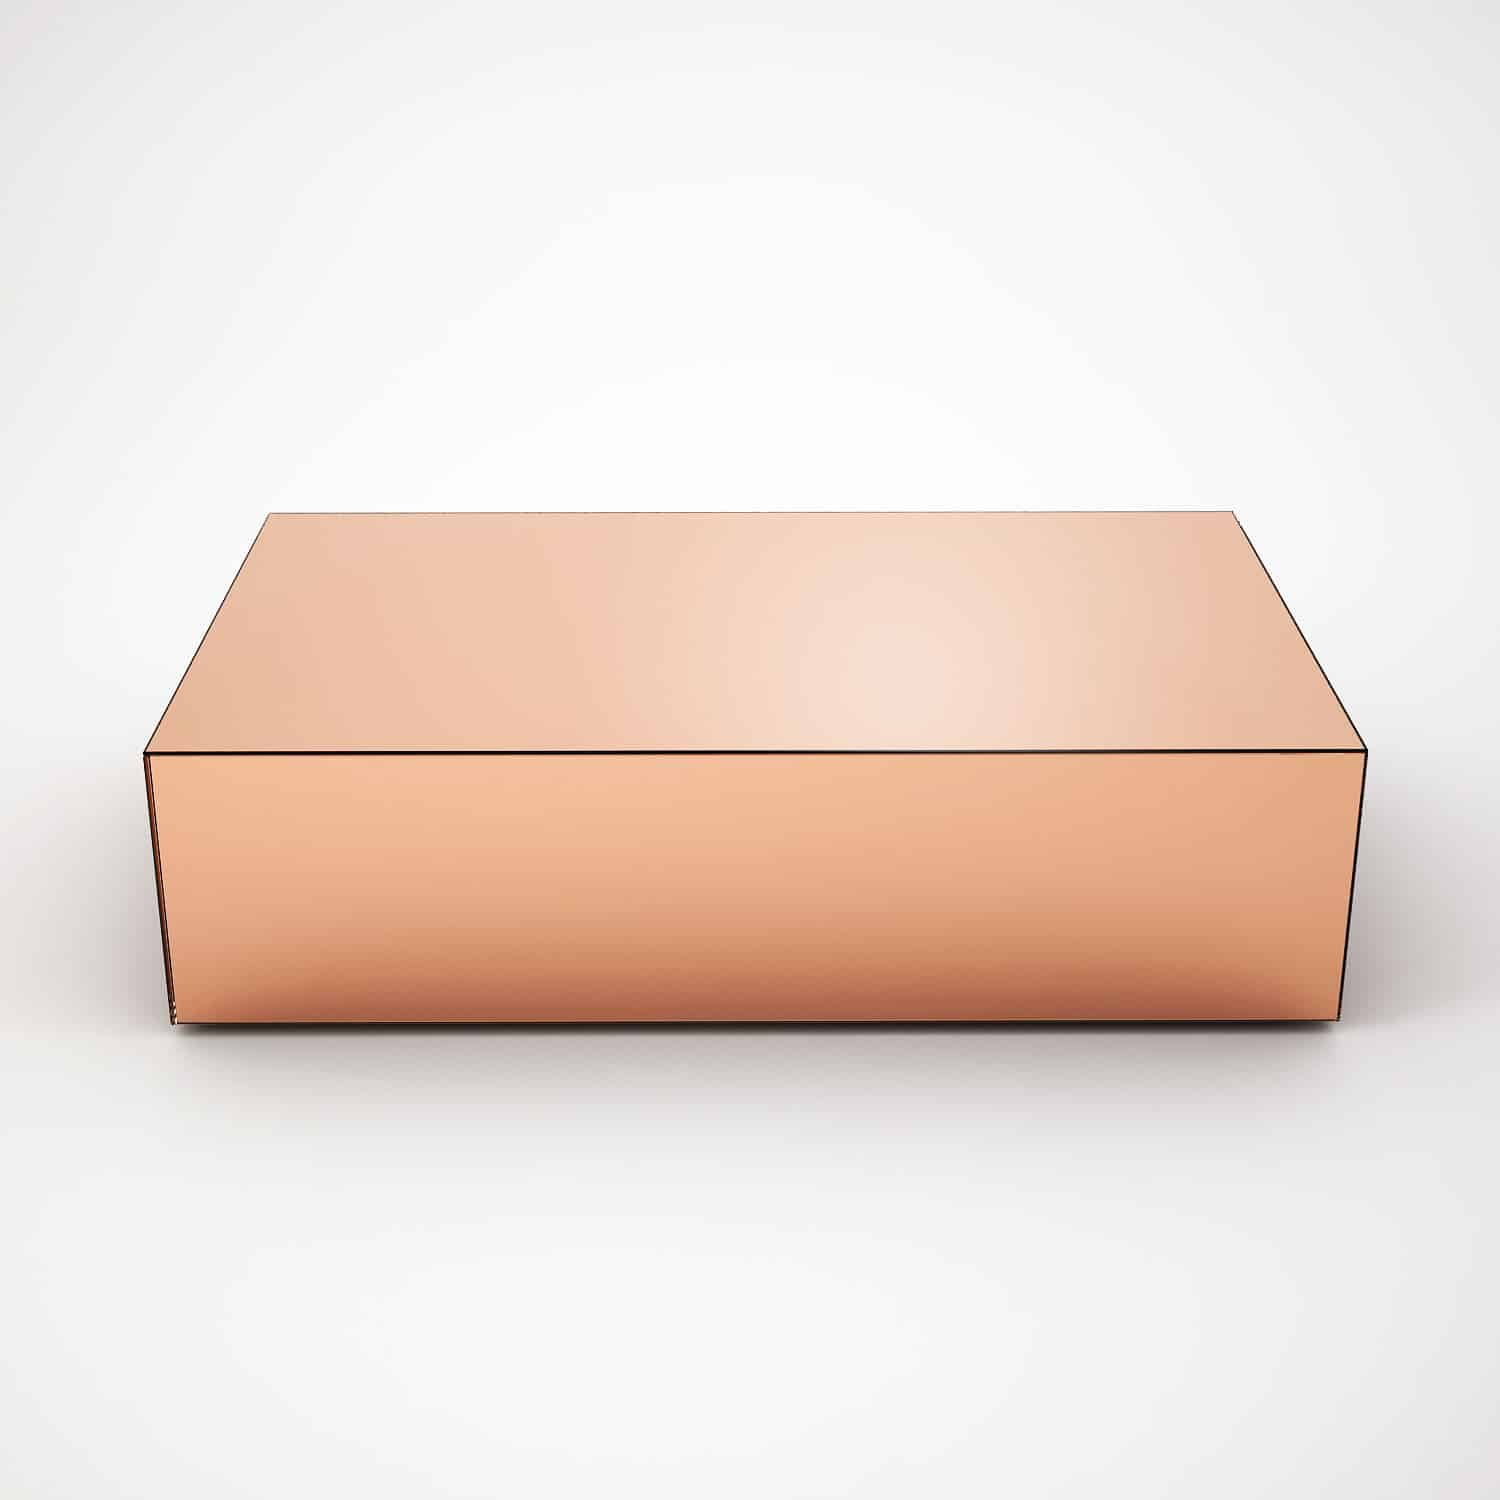 Rectangular copper mirrored coffee table by mirrorbox for Glass furniture